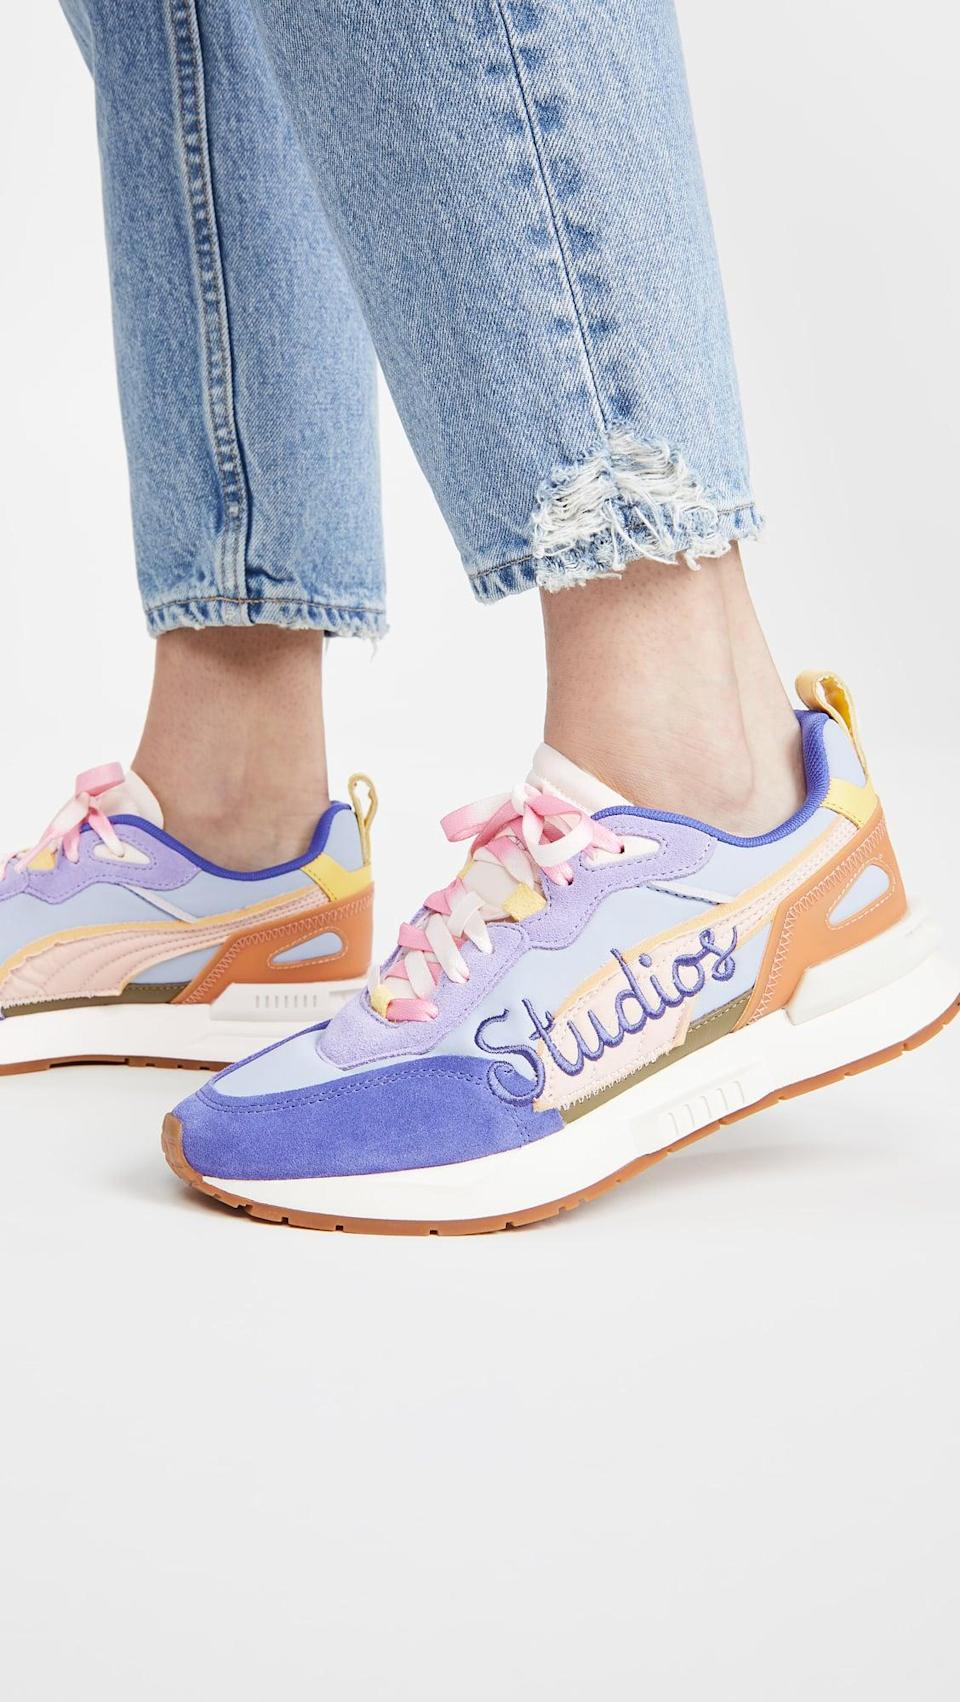 """<p><span>Puma x KidSuper Mirage Mox Sneakers</span> ($130)</p> <p>""""The pastel colorway of these Veja sneakers is so dreamy. I'll wear them with a simple tee and jeans so they can get all the attention."""" - Macy Cate Williams, senior editor, Shop</p>"""